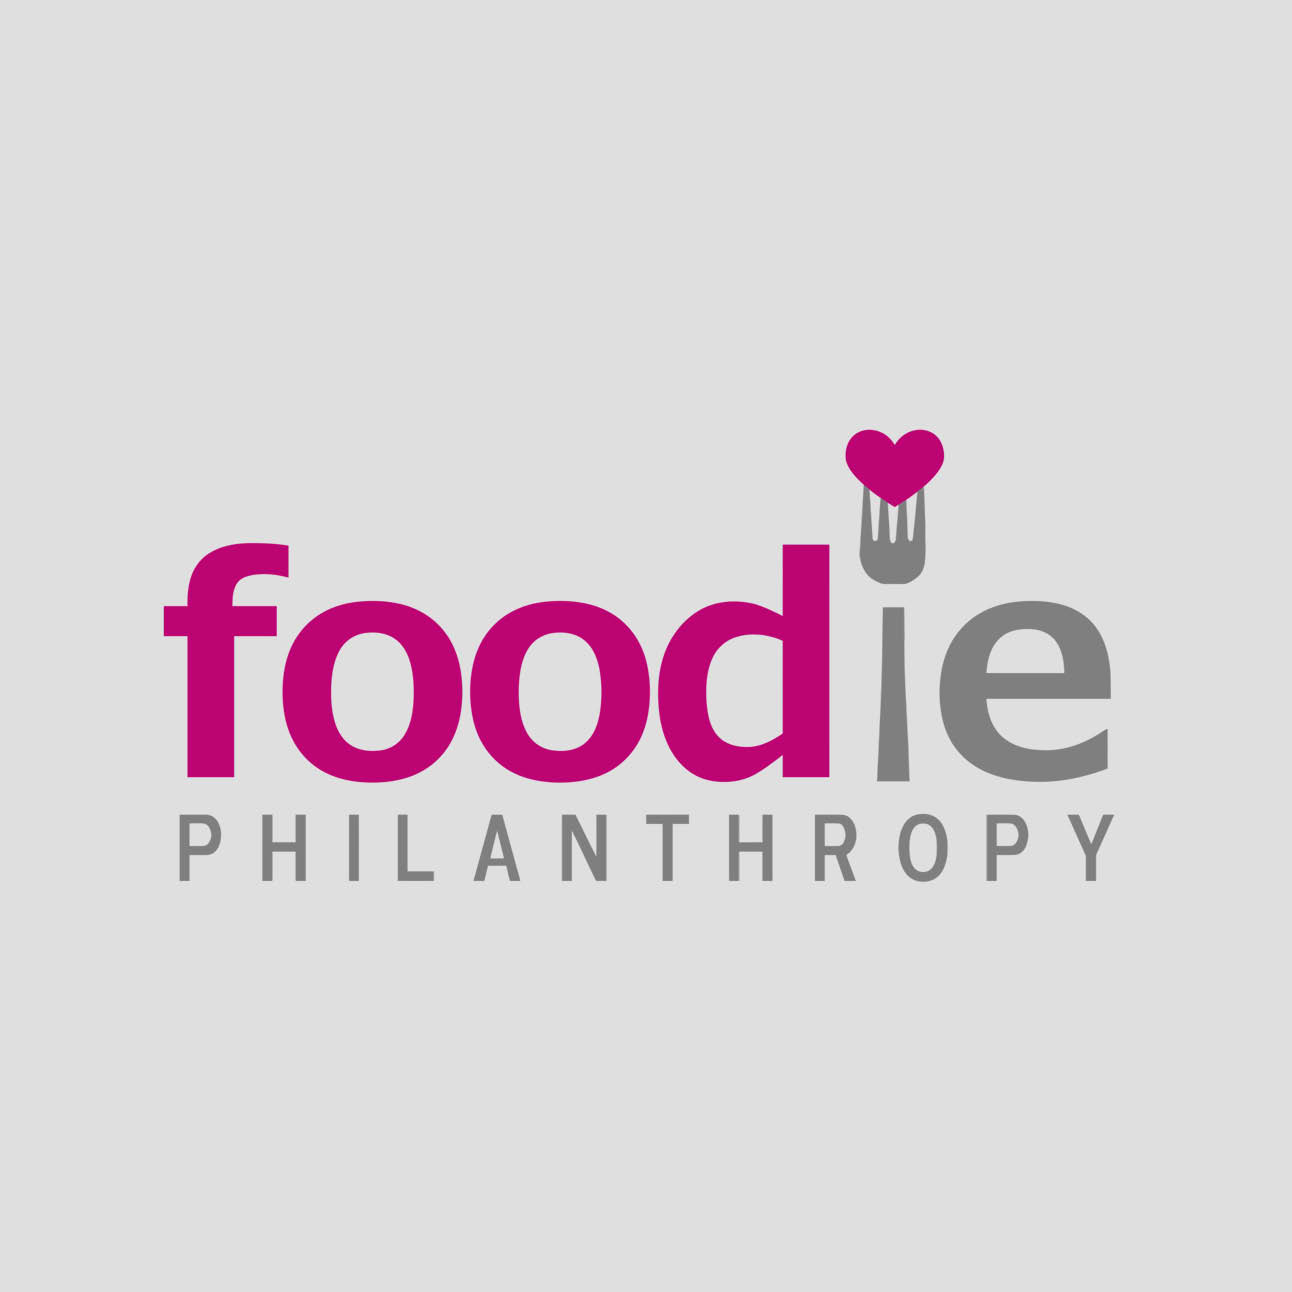 MJM is in the running to become Foodie Philanthropy's 2020 Charity of Choice